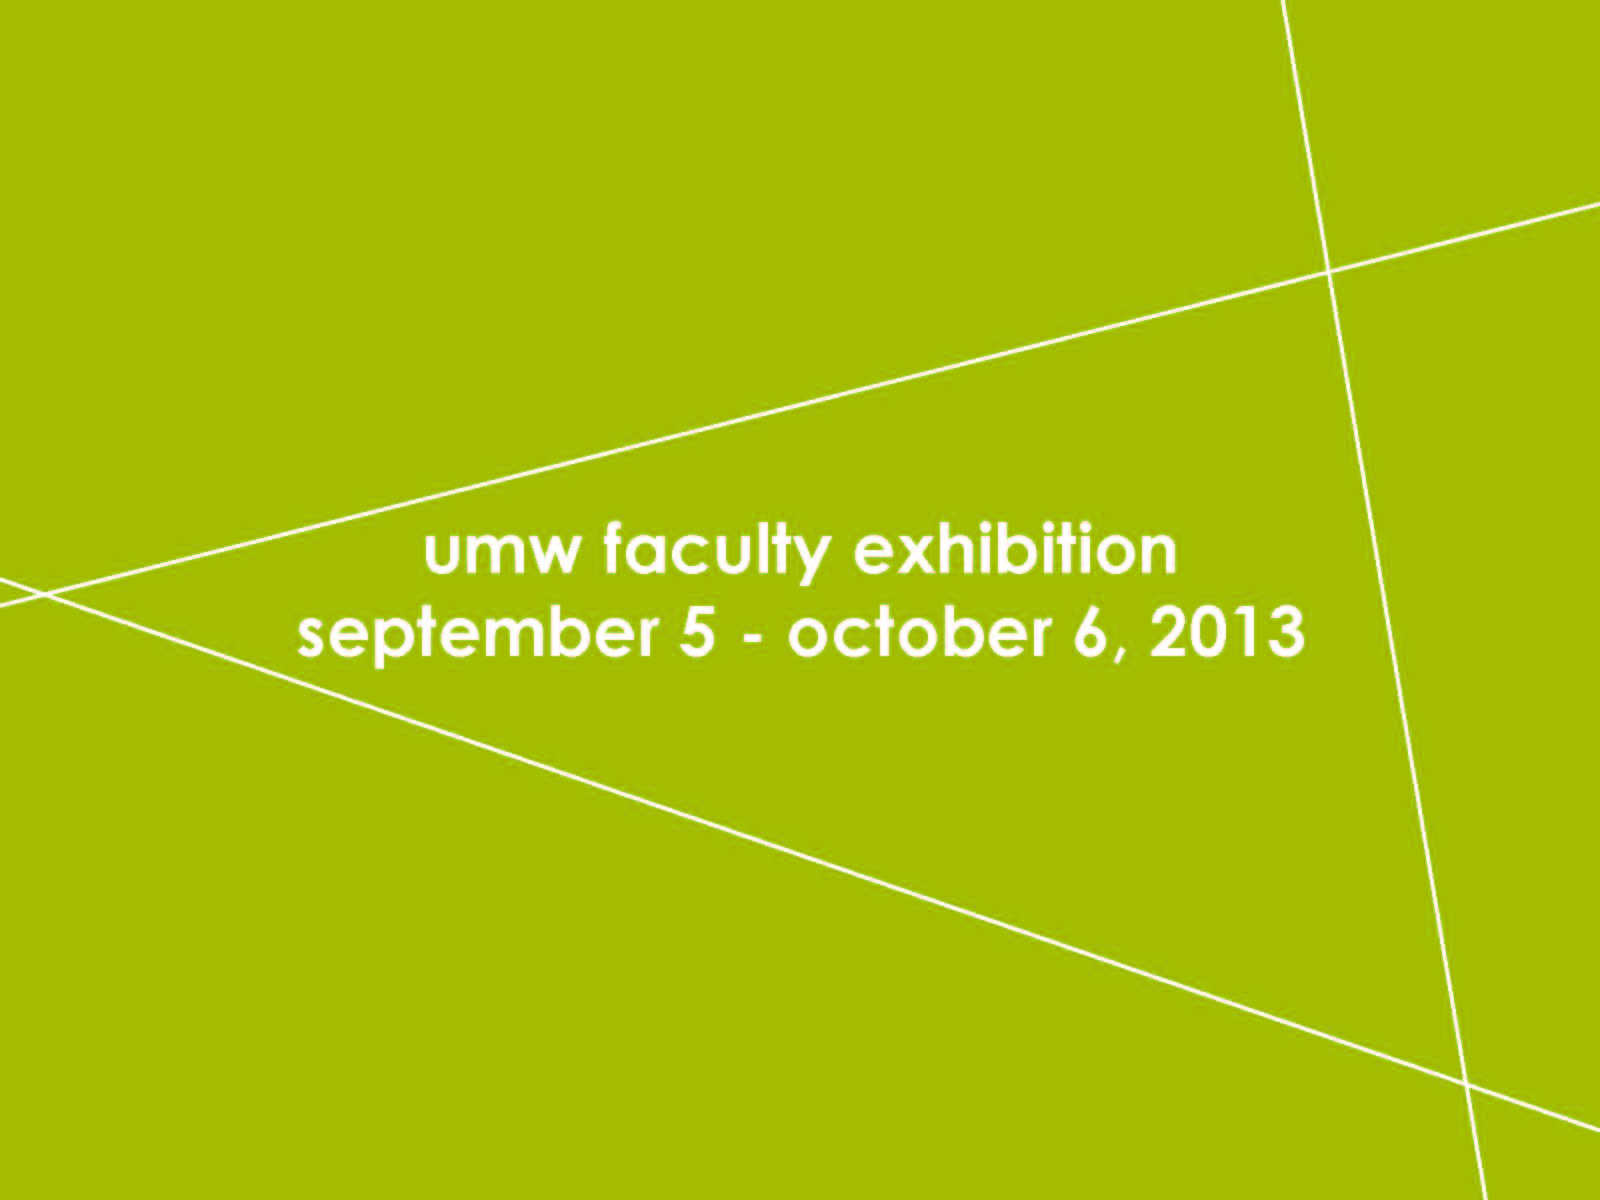 Faculty Exhibition 2013 Postcard Front